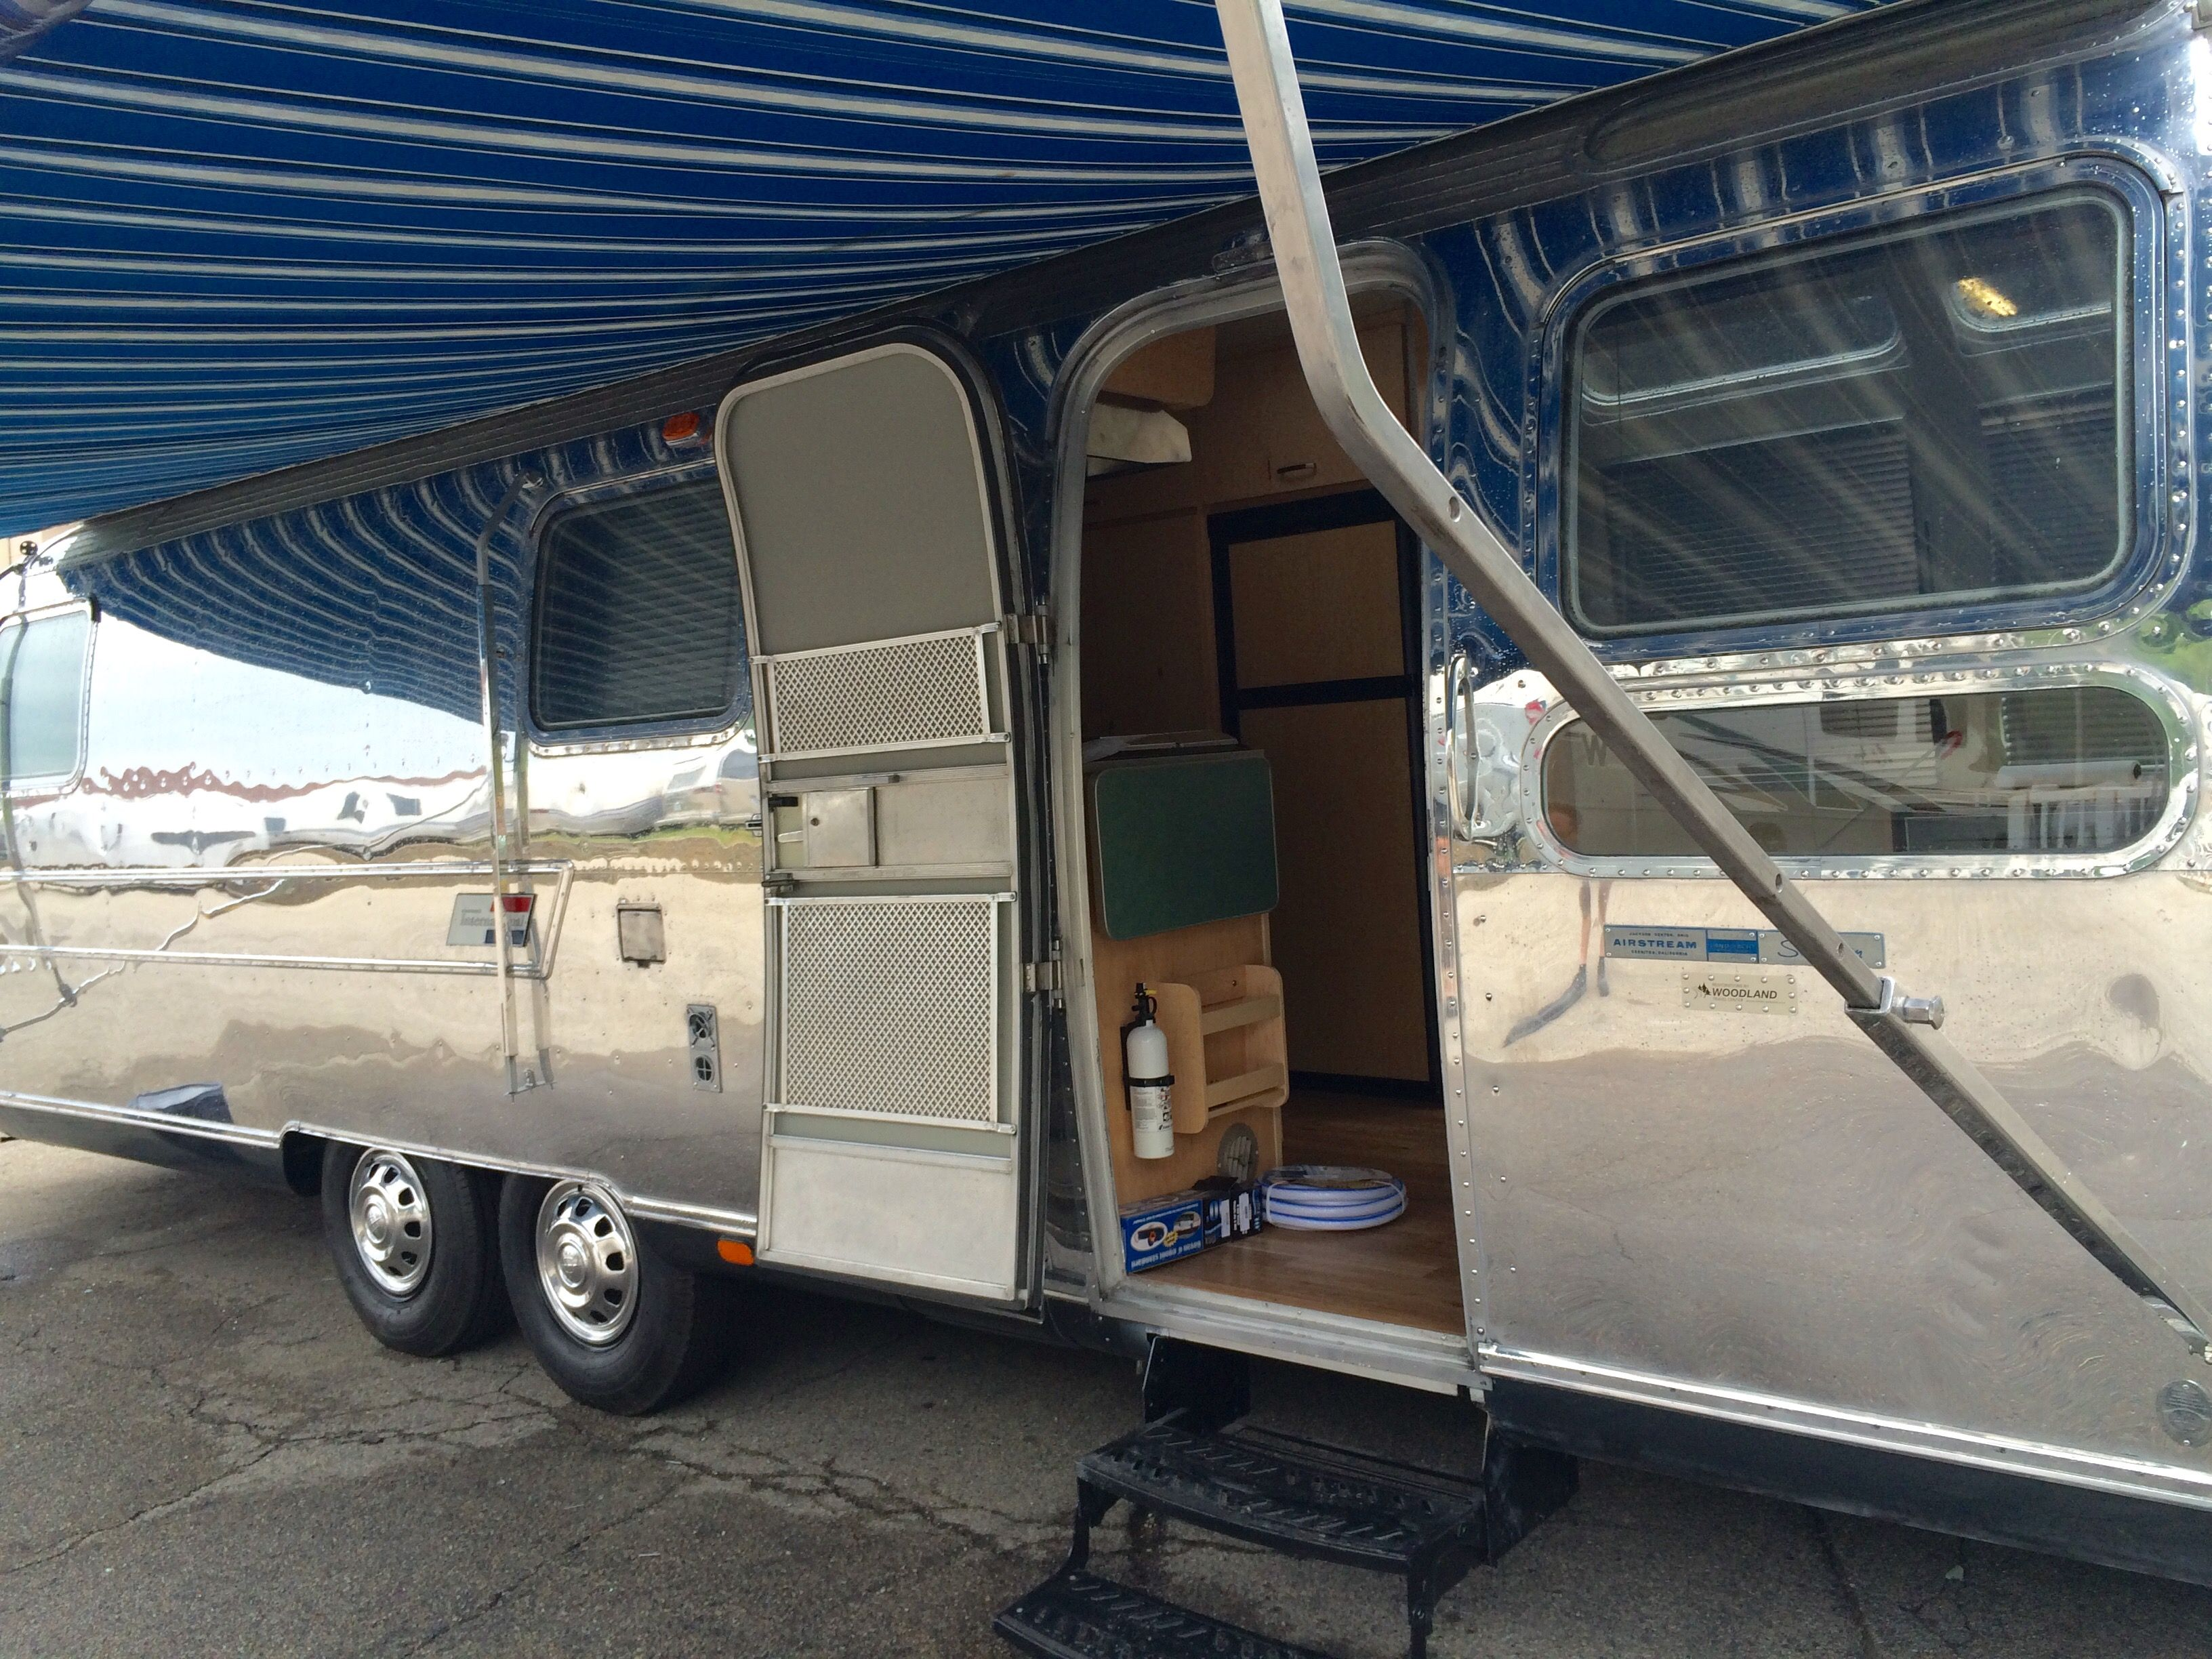 Polished Vintage Airstream Travel Trailer With New Awning